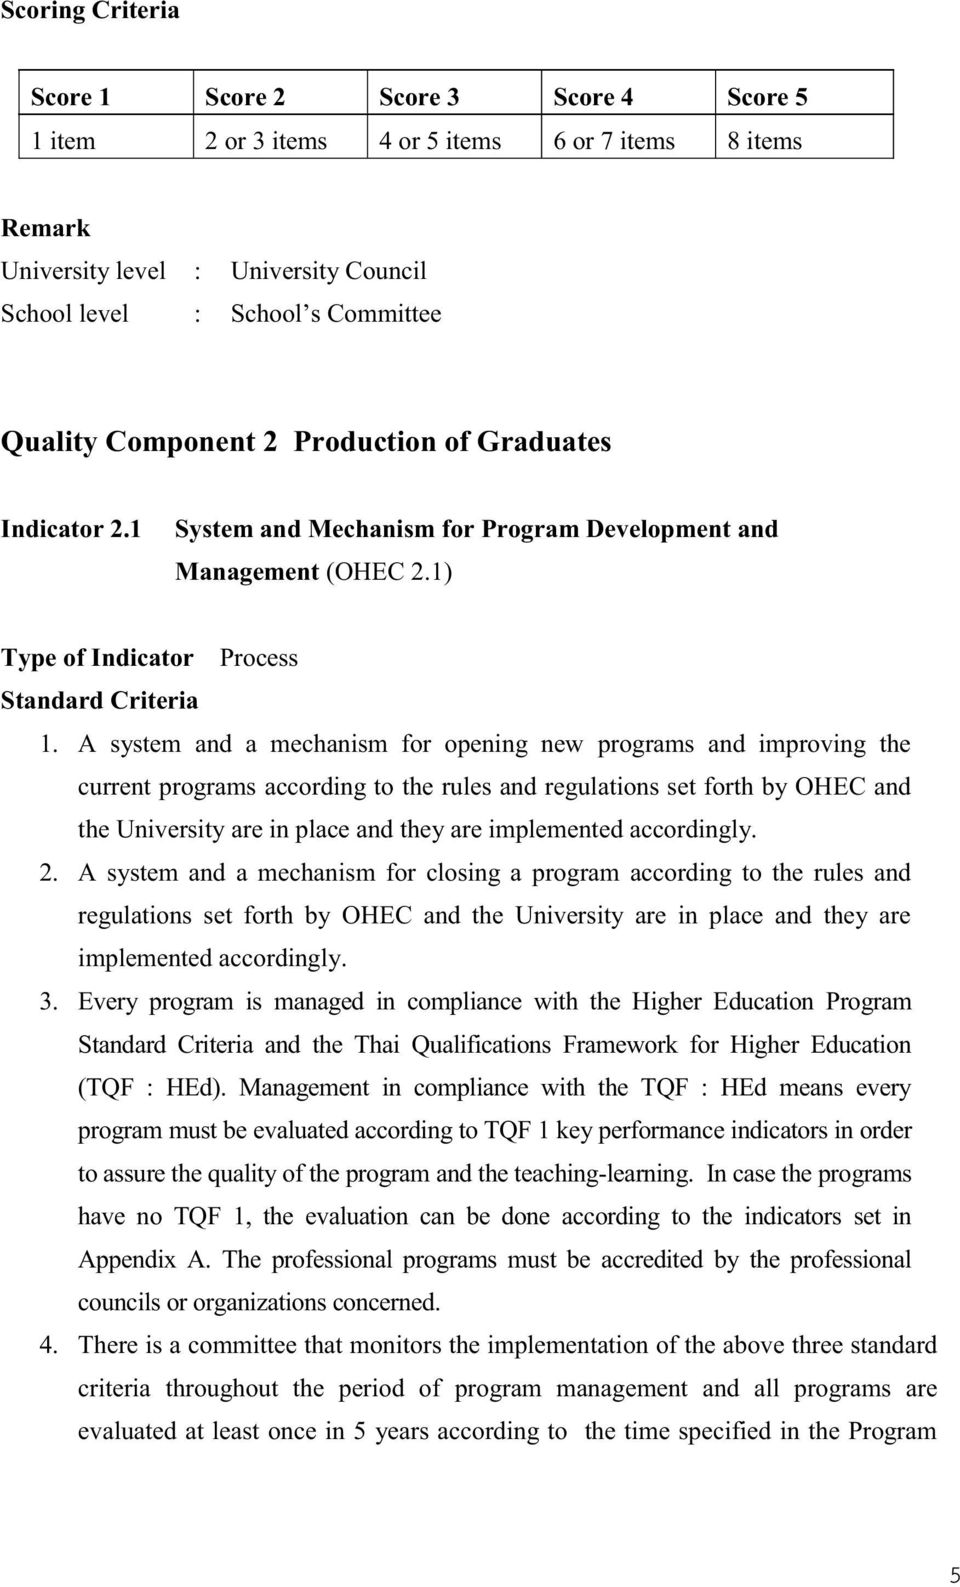 A system and a mechanism for opening new programs and improving the current programs according to the rules and regulations set forth by OHEC and the University are in place and they are implemented